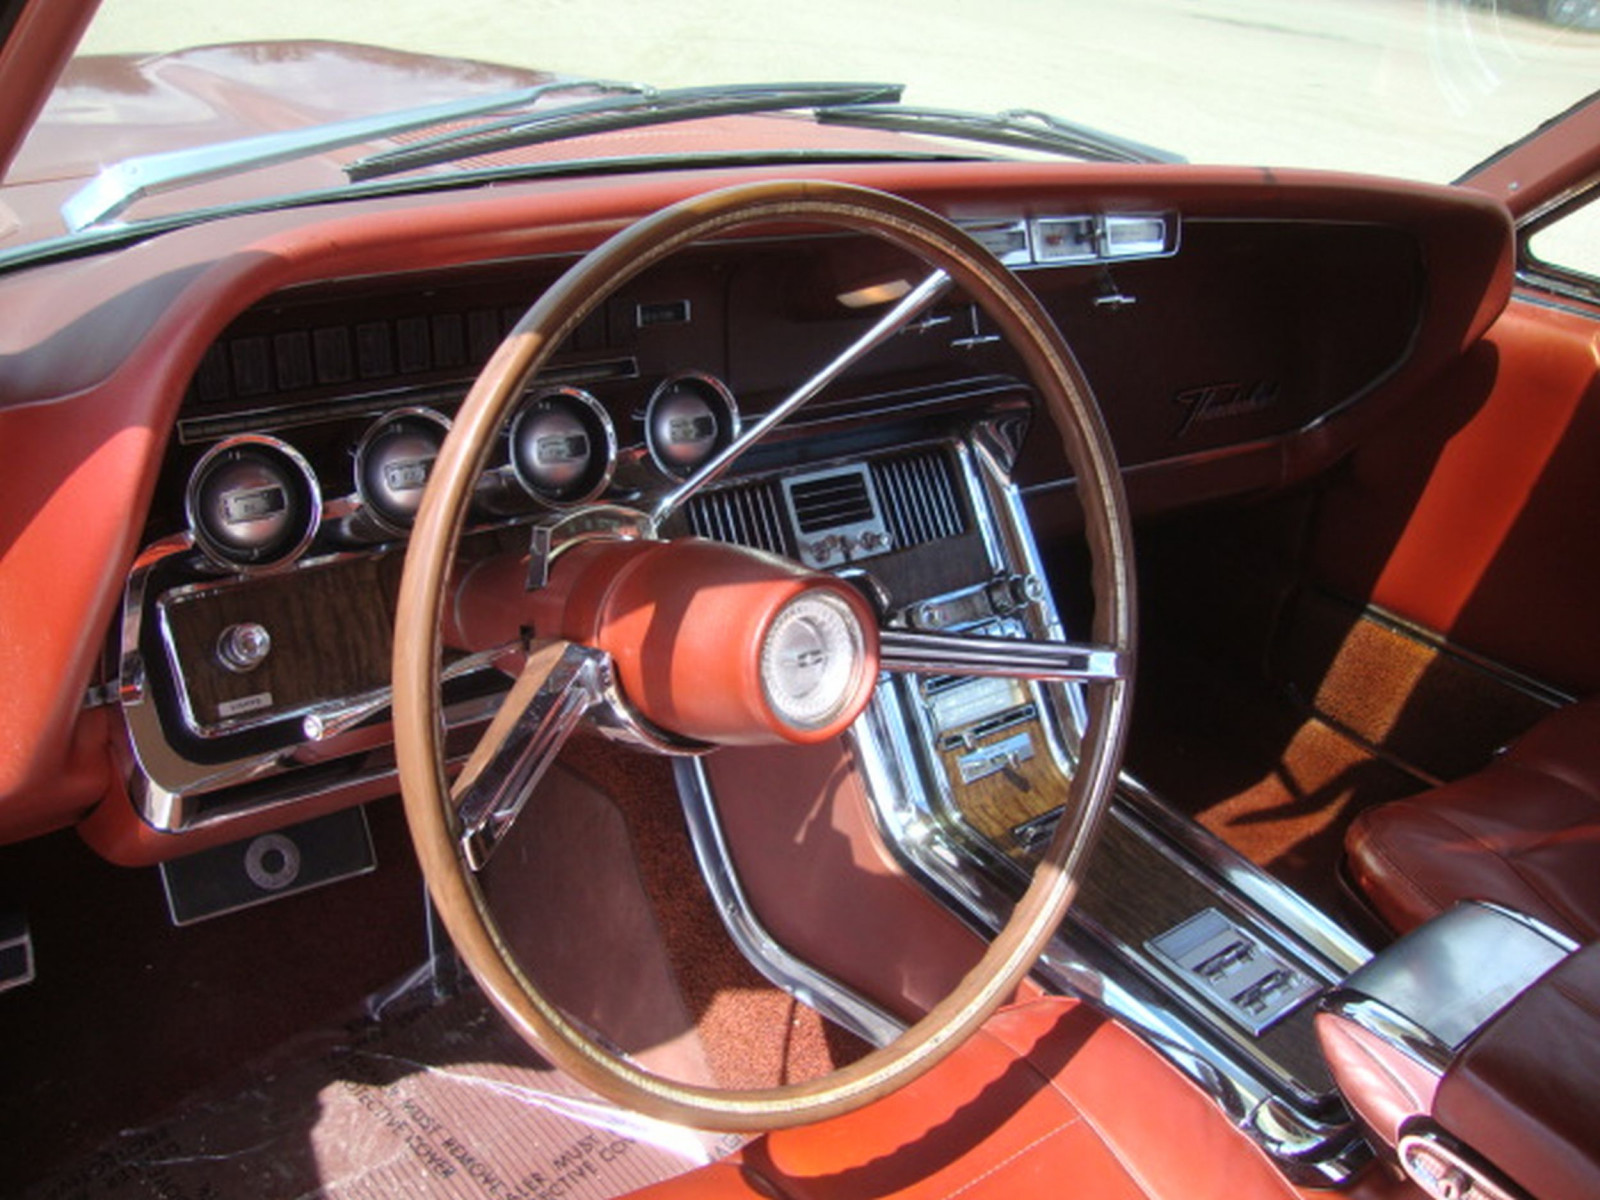 1966 Ford Thunderbird Coupe - Image 14